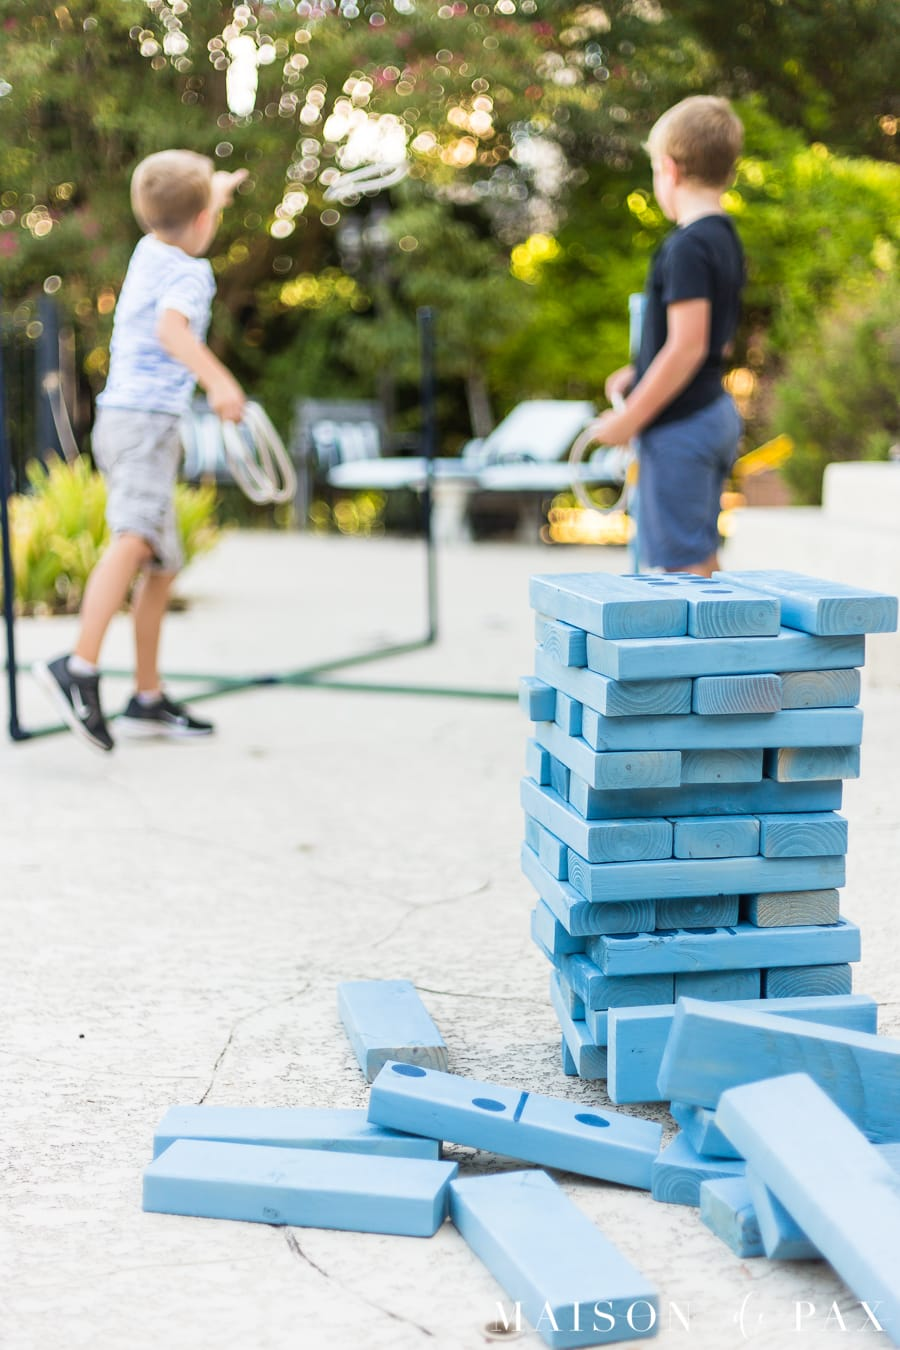 Make giant Jenga with your kids: find this and other family projects plus tips for completing project with kids! #familyfun #familyproject #outdoorgames #kidfriendlyproject #diyproject